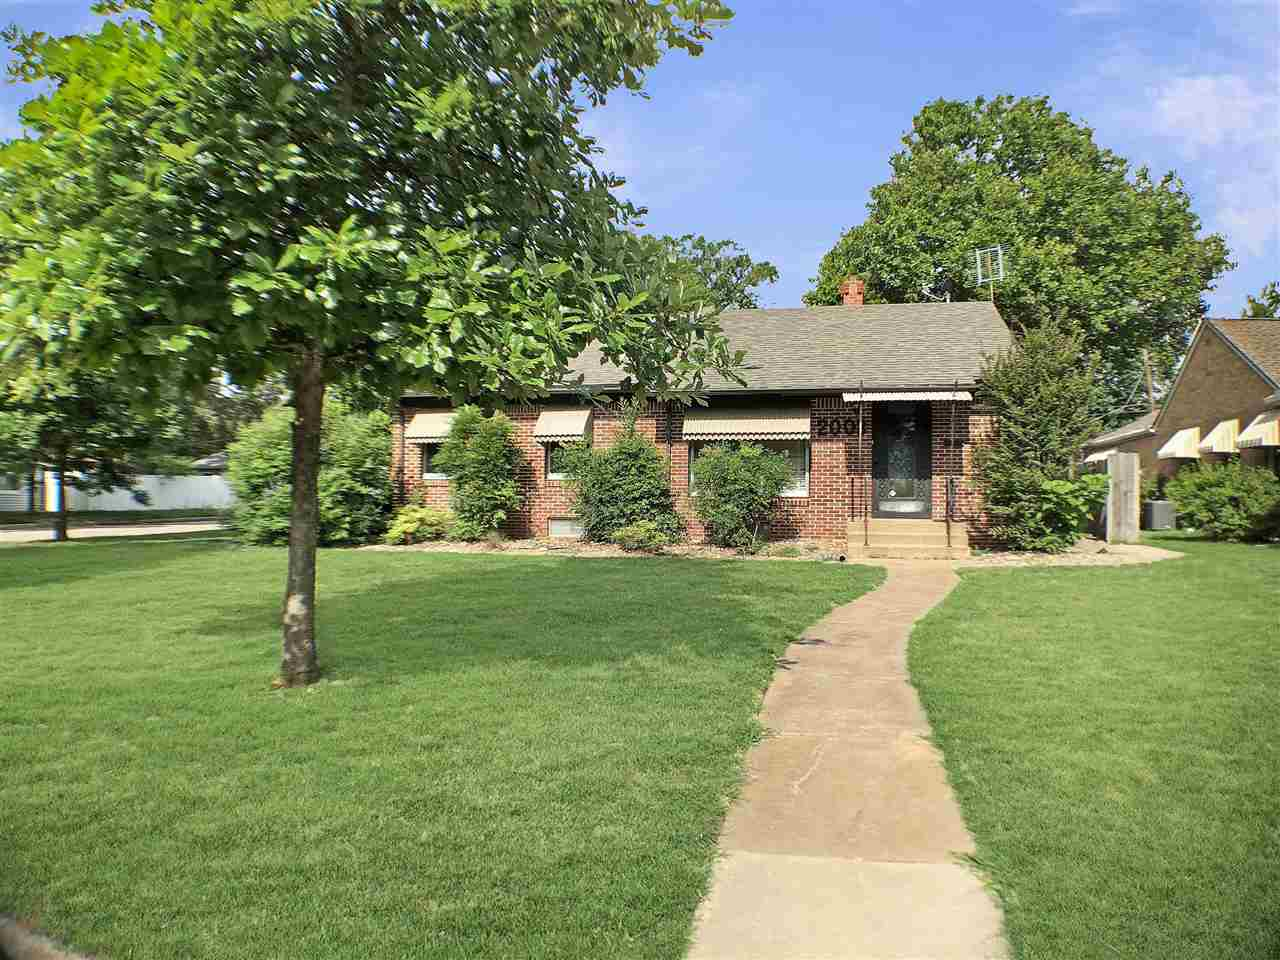 Darling all-brick ranch home on beautiful corner lot in North Riverside.  2bd, 2ba, 2car (detached) 2001 square foot home.   Walk into character and see the quaint living room's fireplace and built in shelves. Upstairs has 2 bedrooms, a bath, kitchen and dining room with beautiful wood flooring. Basement offers a large living room and non-conforming area with closet which can be great for extra sleeping space, gym or office.  Off to the side of the stairs is a large laundry room, bathroom and storage space. Enjoy summer nights on the cozy, paved private patio between home and garage.  The second chain-link fenced side yard  is perfect for kids and pets to play.